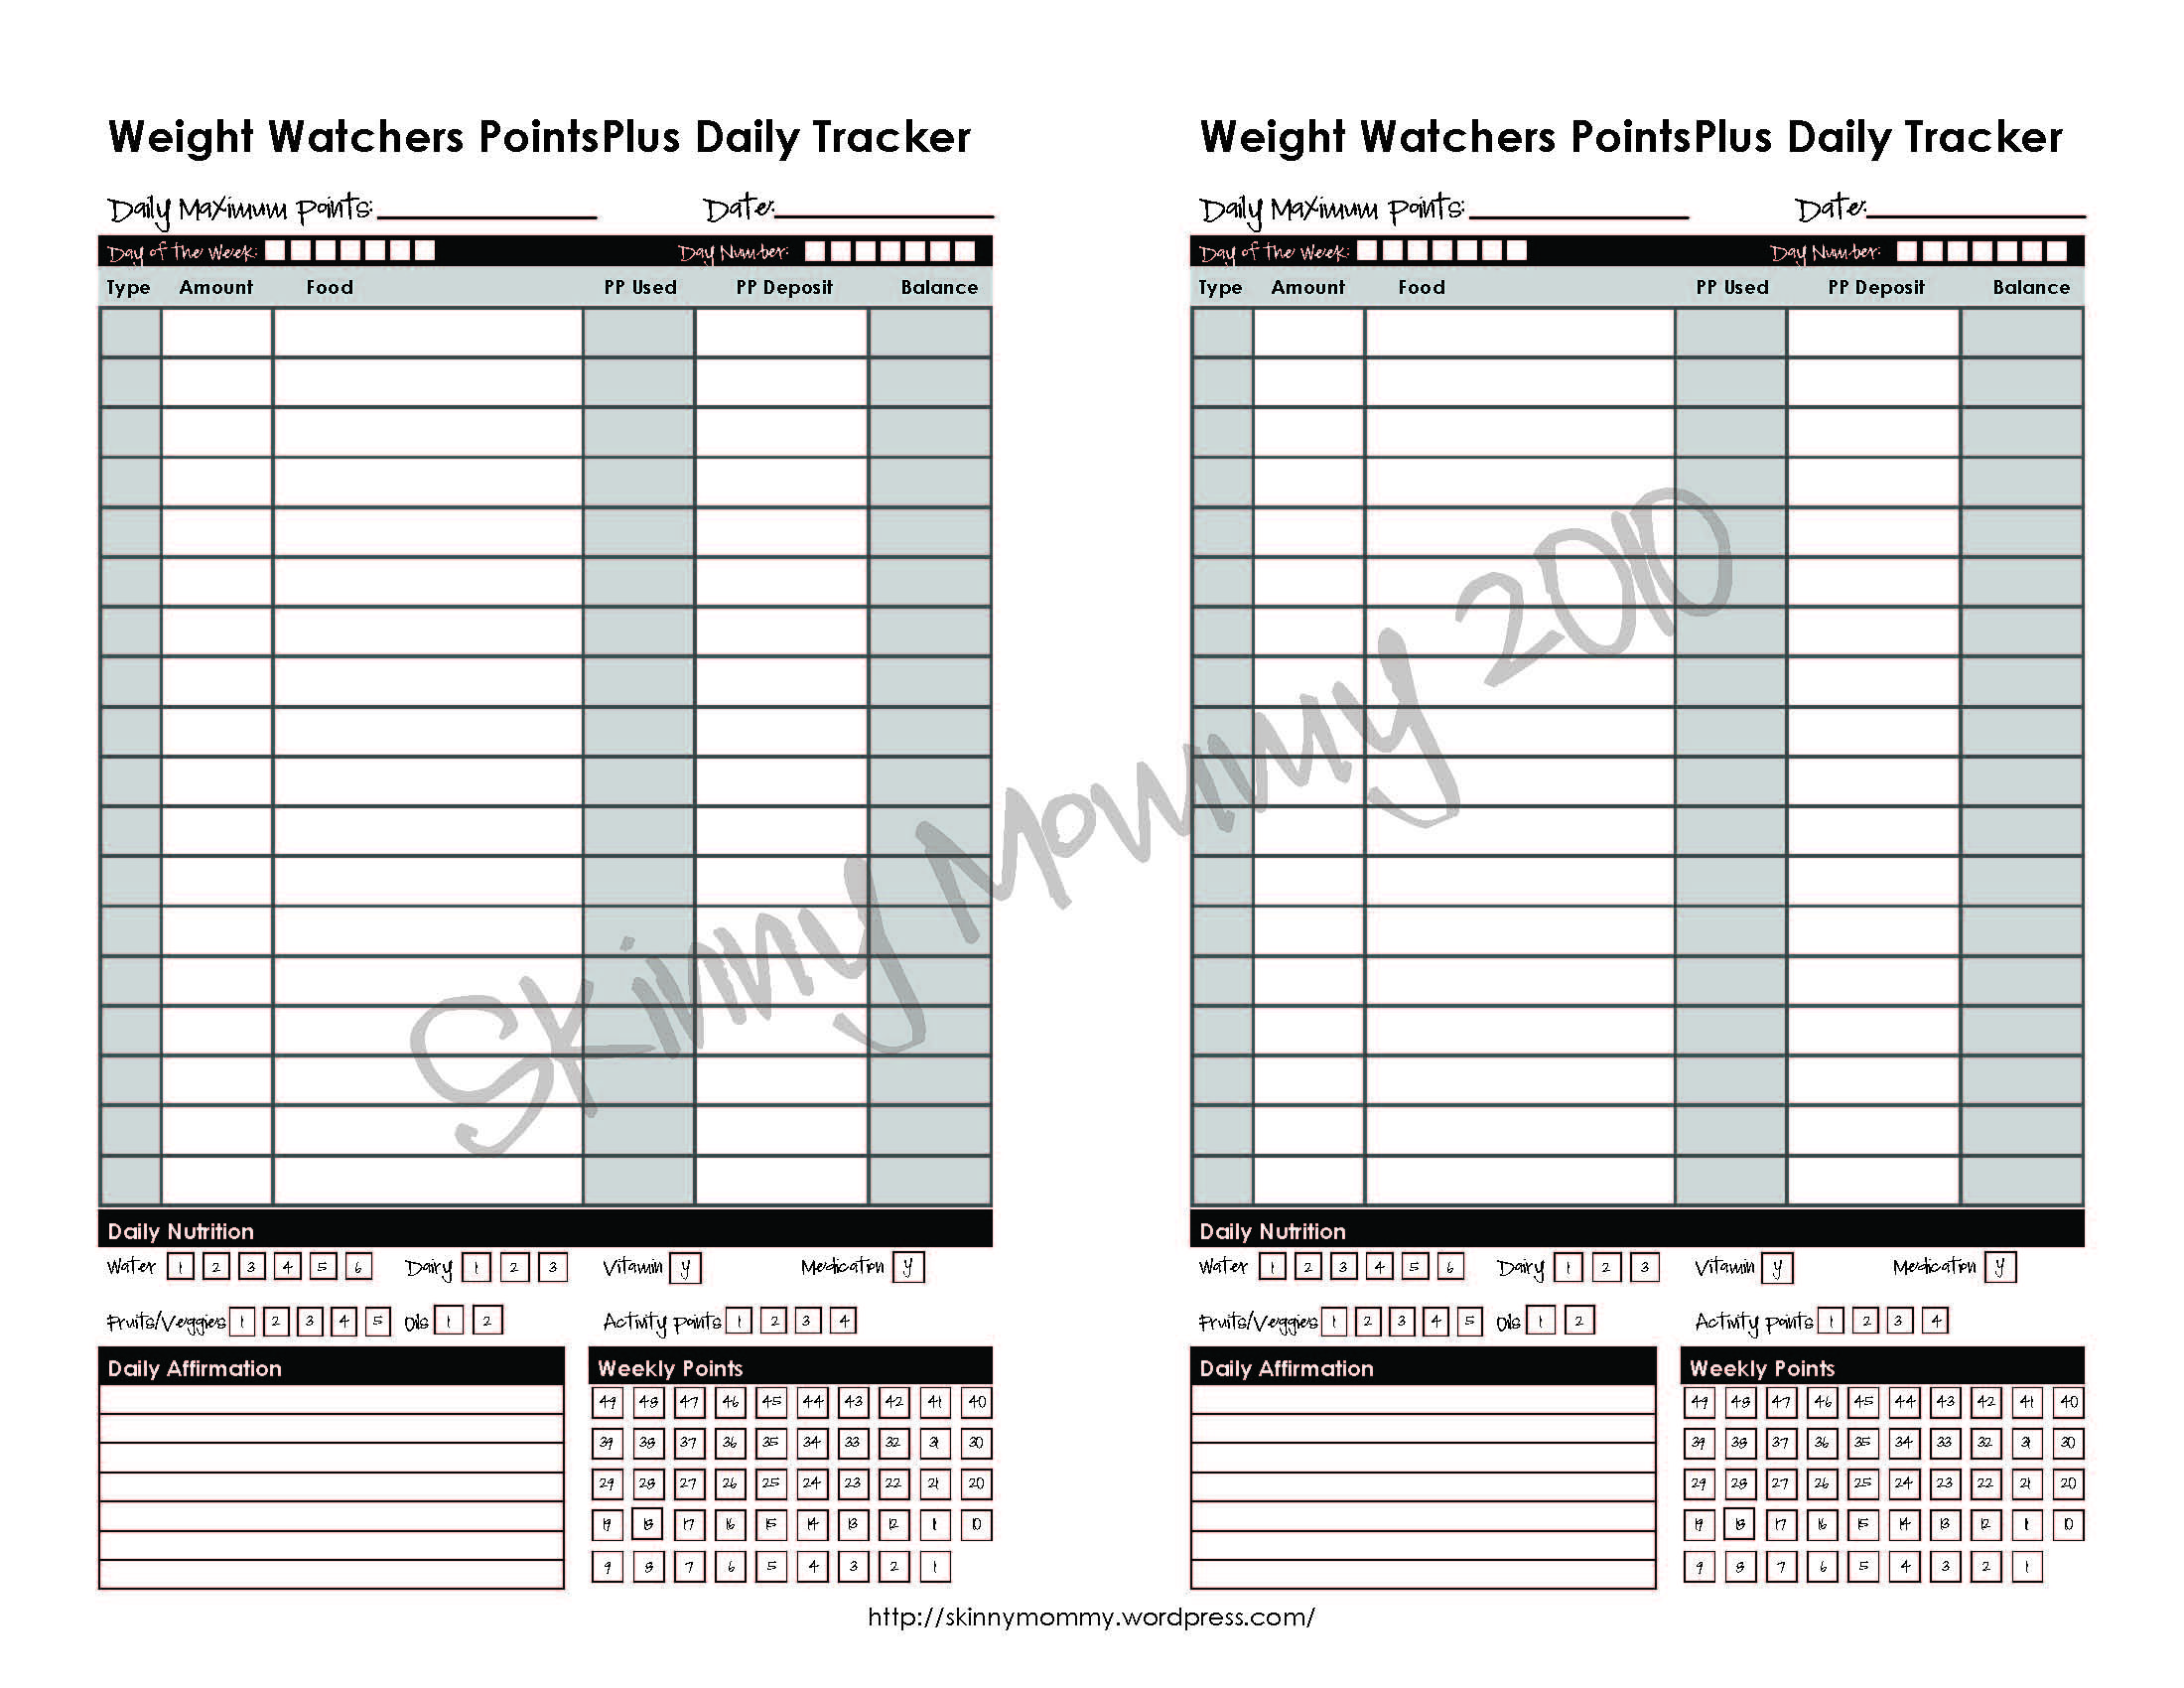 Weight Watchers Simply Filling Worksheet   Si Inc moreover 24 Luxury Weight Watchers Simply Filling Worksheet   Cross Addiction furthermore Simply Filling Technique   Weekly Weigh In   It Sux to be Fat together with Worksheet Watchers Simply Filler Foods Weight     imagessure as well Elegant 263 Best Weight Watchers Images On Pinterest Weight Watchers in addition Weight Watchers Simply Filling Technique Review   Explanation further  furthermore 18 Unique Weight Watchers Simply Filling Worksheet   Cross Addiction likewise  as well  as well Momentum Plan   Simply Filling Technique   WW Cheat Sheets   Simply additionally  together with 24 Luxury Weight Watchers Simply Filling Worksheet   Cross Addiction as well 22 Awesome Weight Watchers Simply Filling Worksheet   Codedell also  also Weight Watchers Simply Filling Worksheet ly 38 Results for. on weight watchers simply filling worksheet